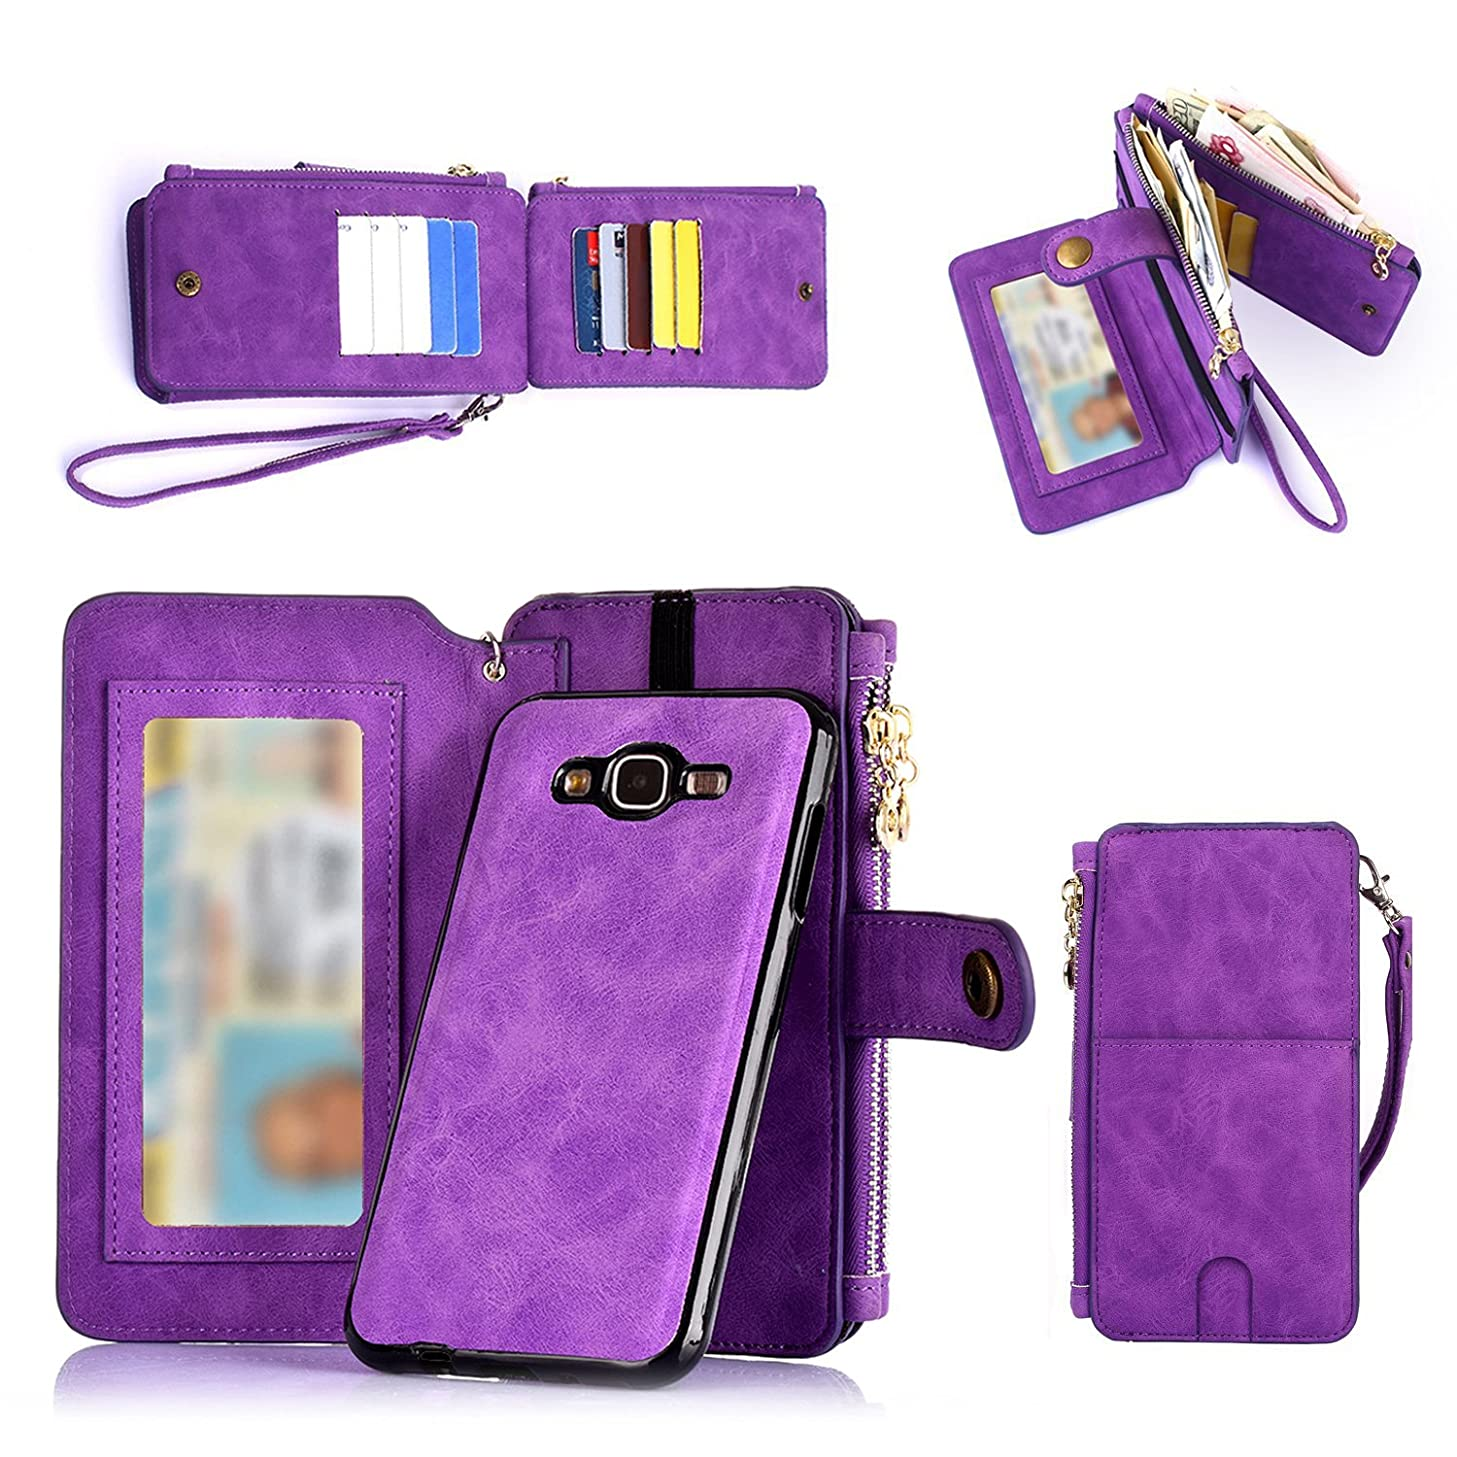 Galaxy J7 Wallet Case, Improved 12 Card Holder, Dual Zipper Cash Change Slot, PU Leather Cover with Detachable Magnetic Phone Case - Purple